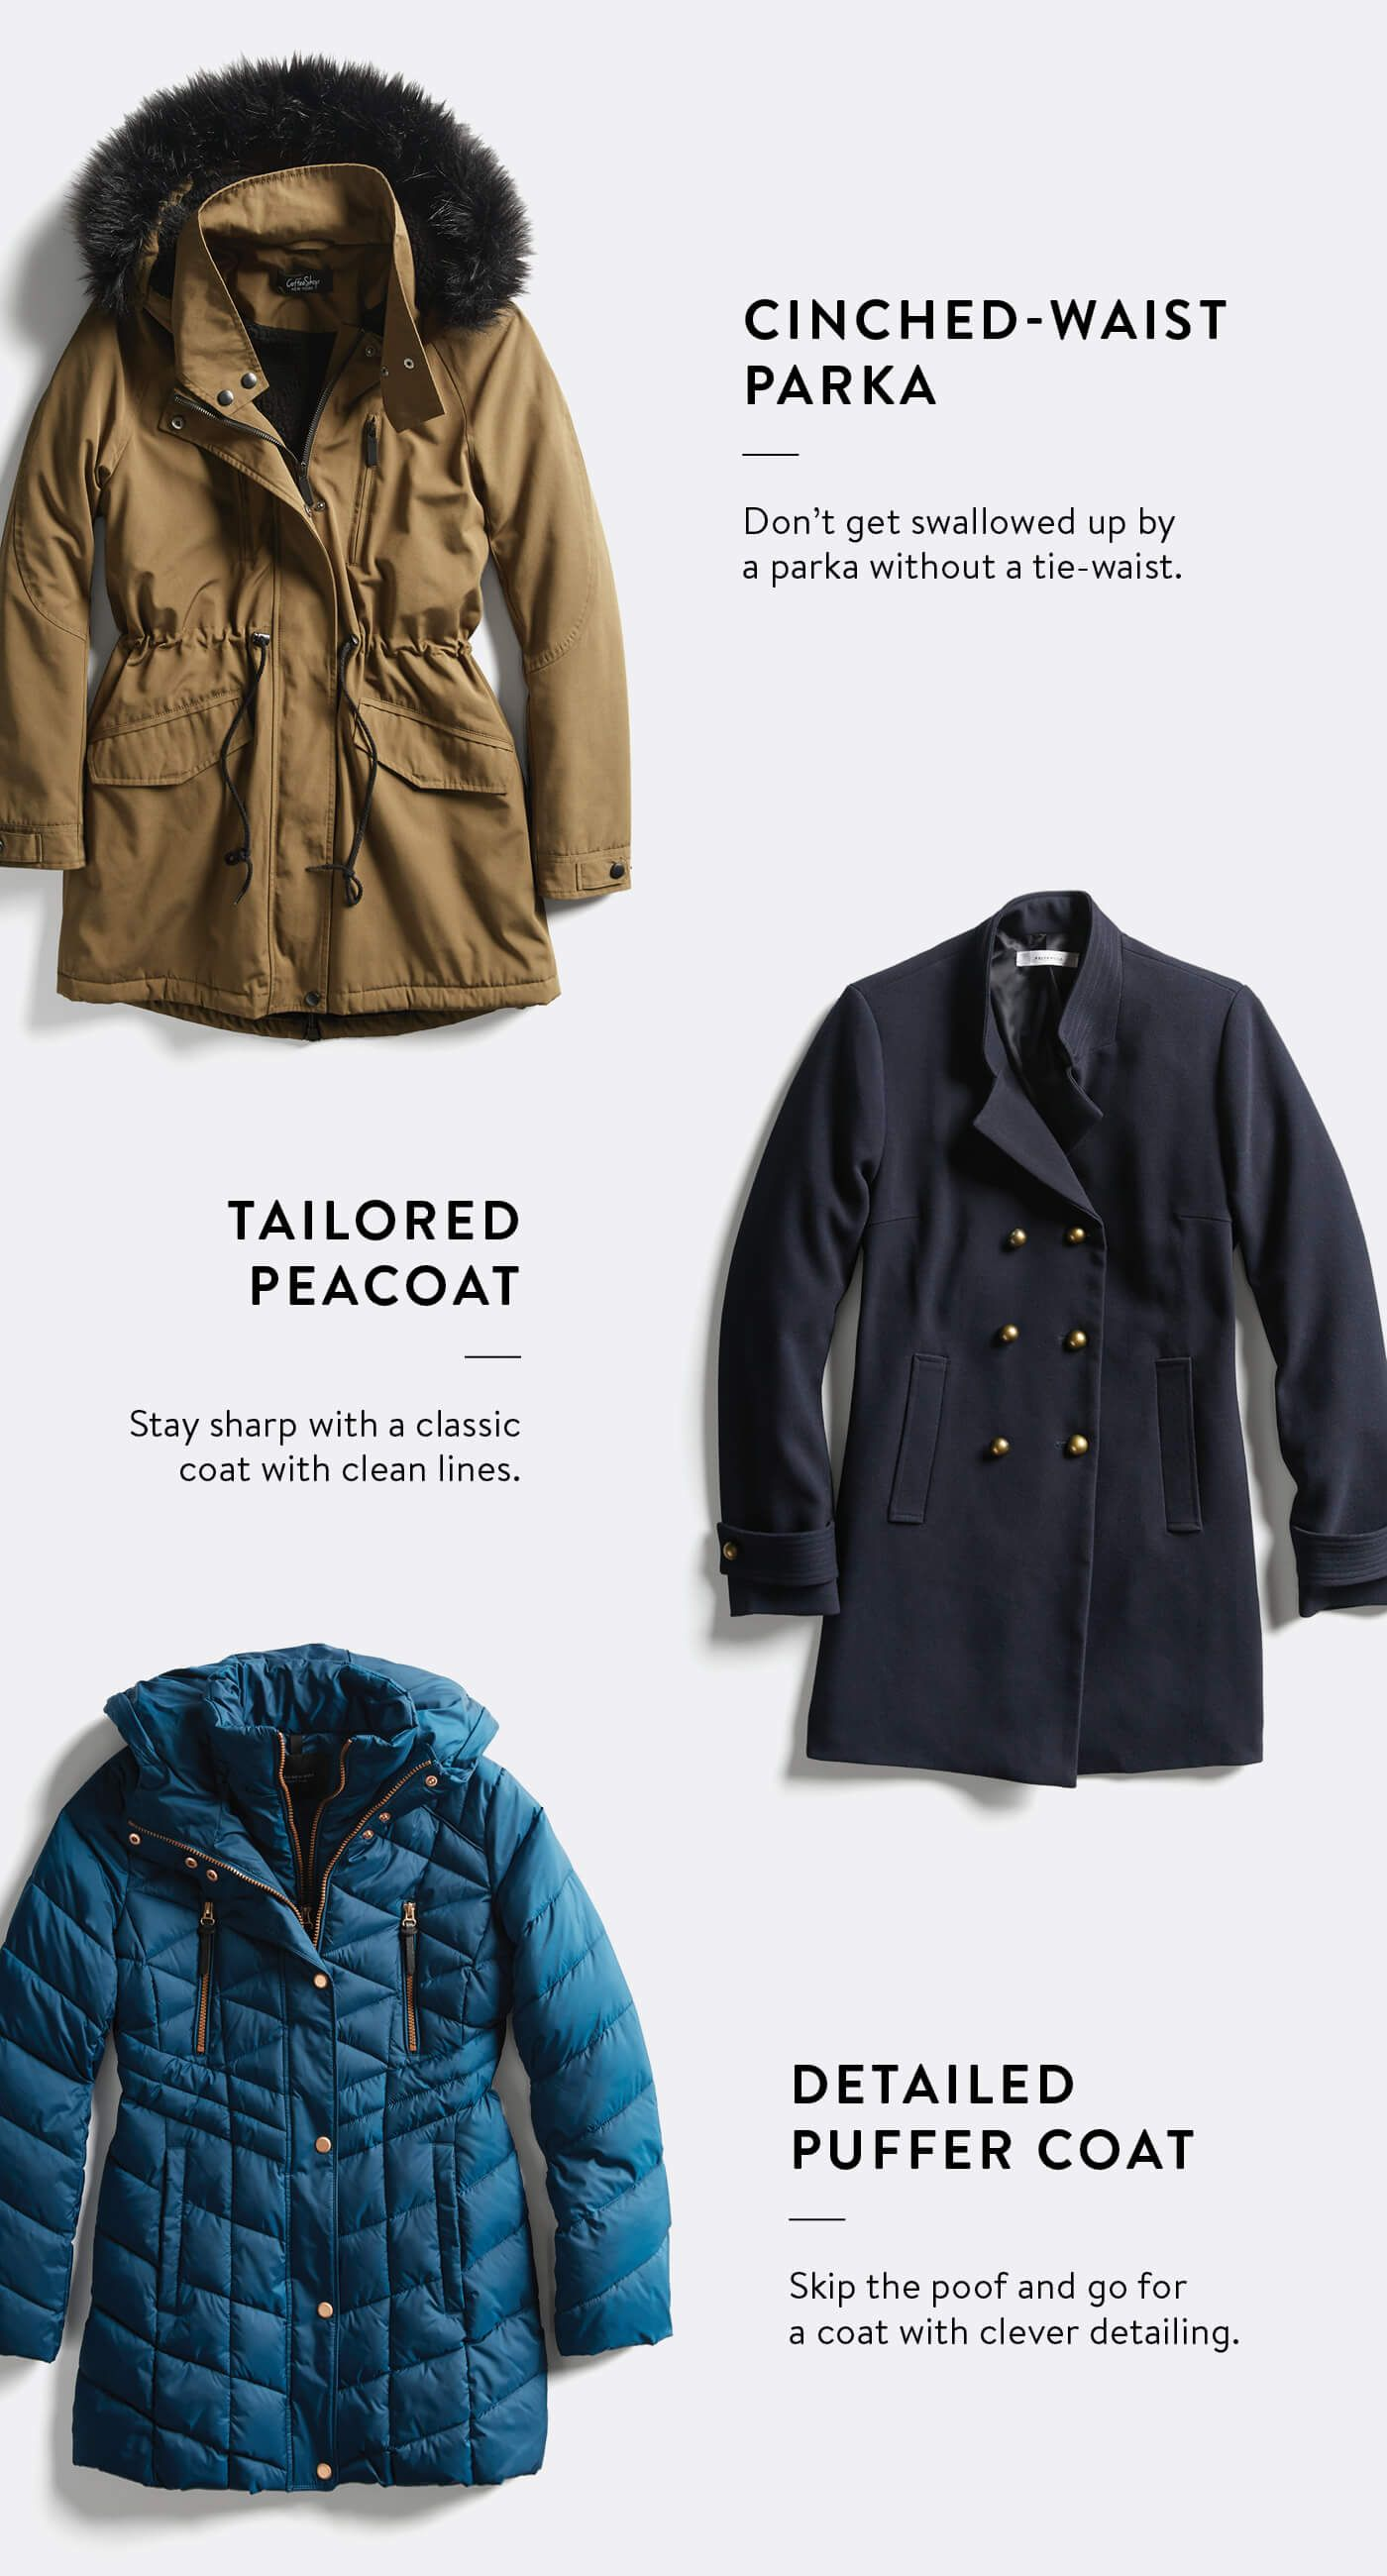 What Are The Best Coats For Petite Ladies Stitch Fix Style Petite Winter Coats Petite Outfits Fashion For Petite Women [ 2600 x 1400 Pixel ]